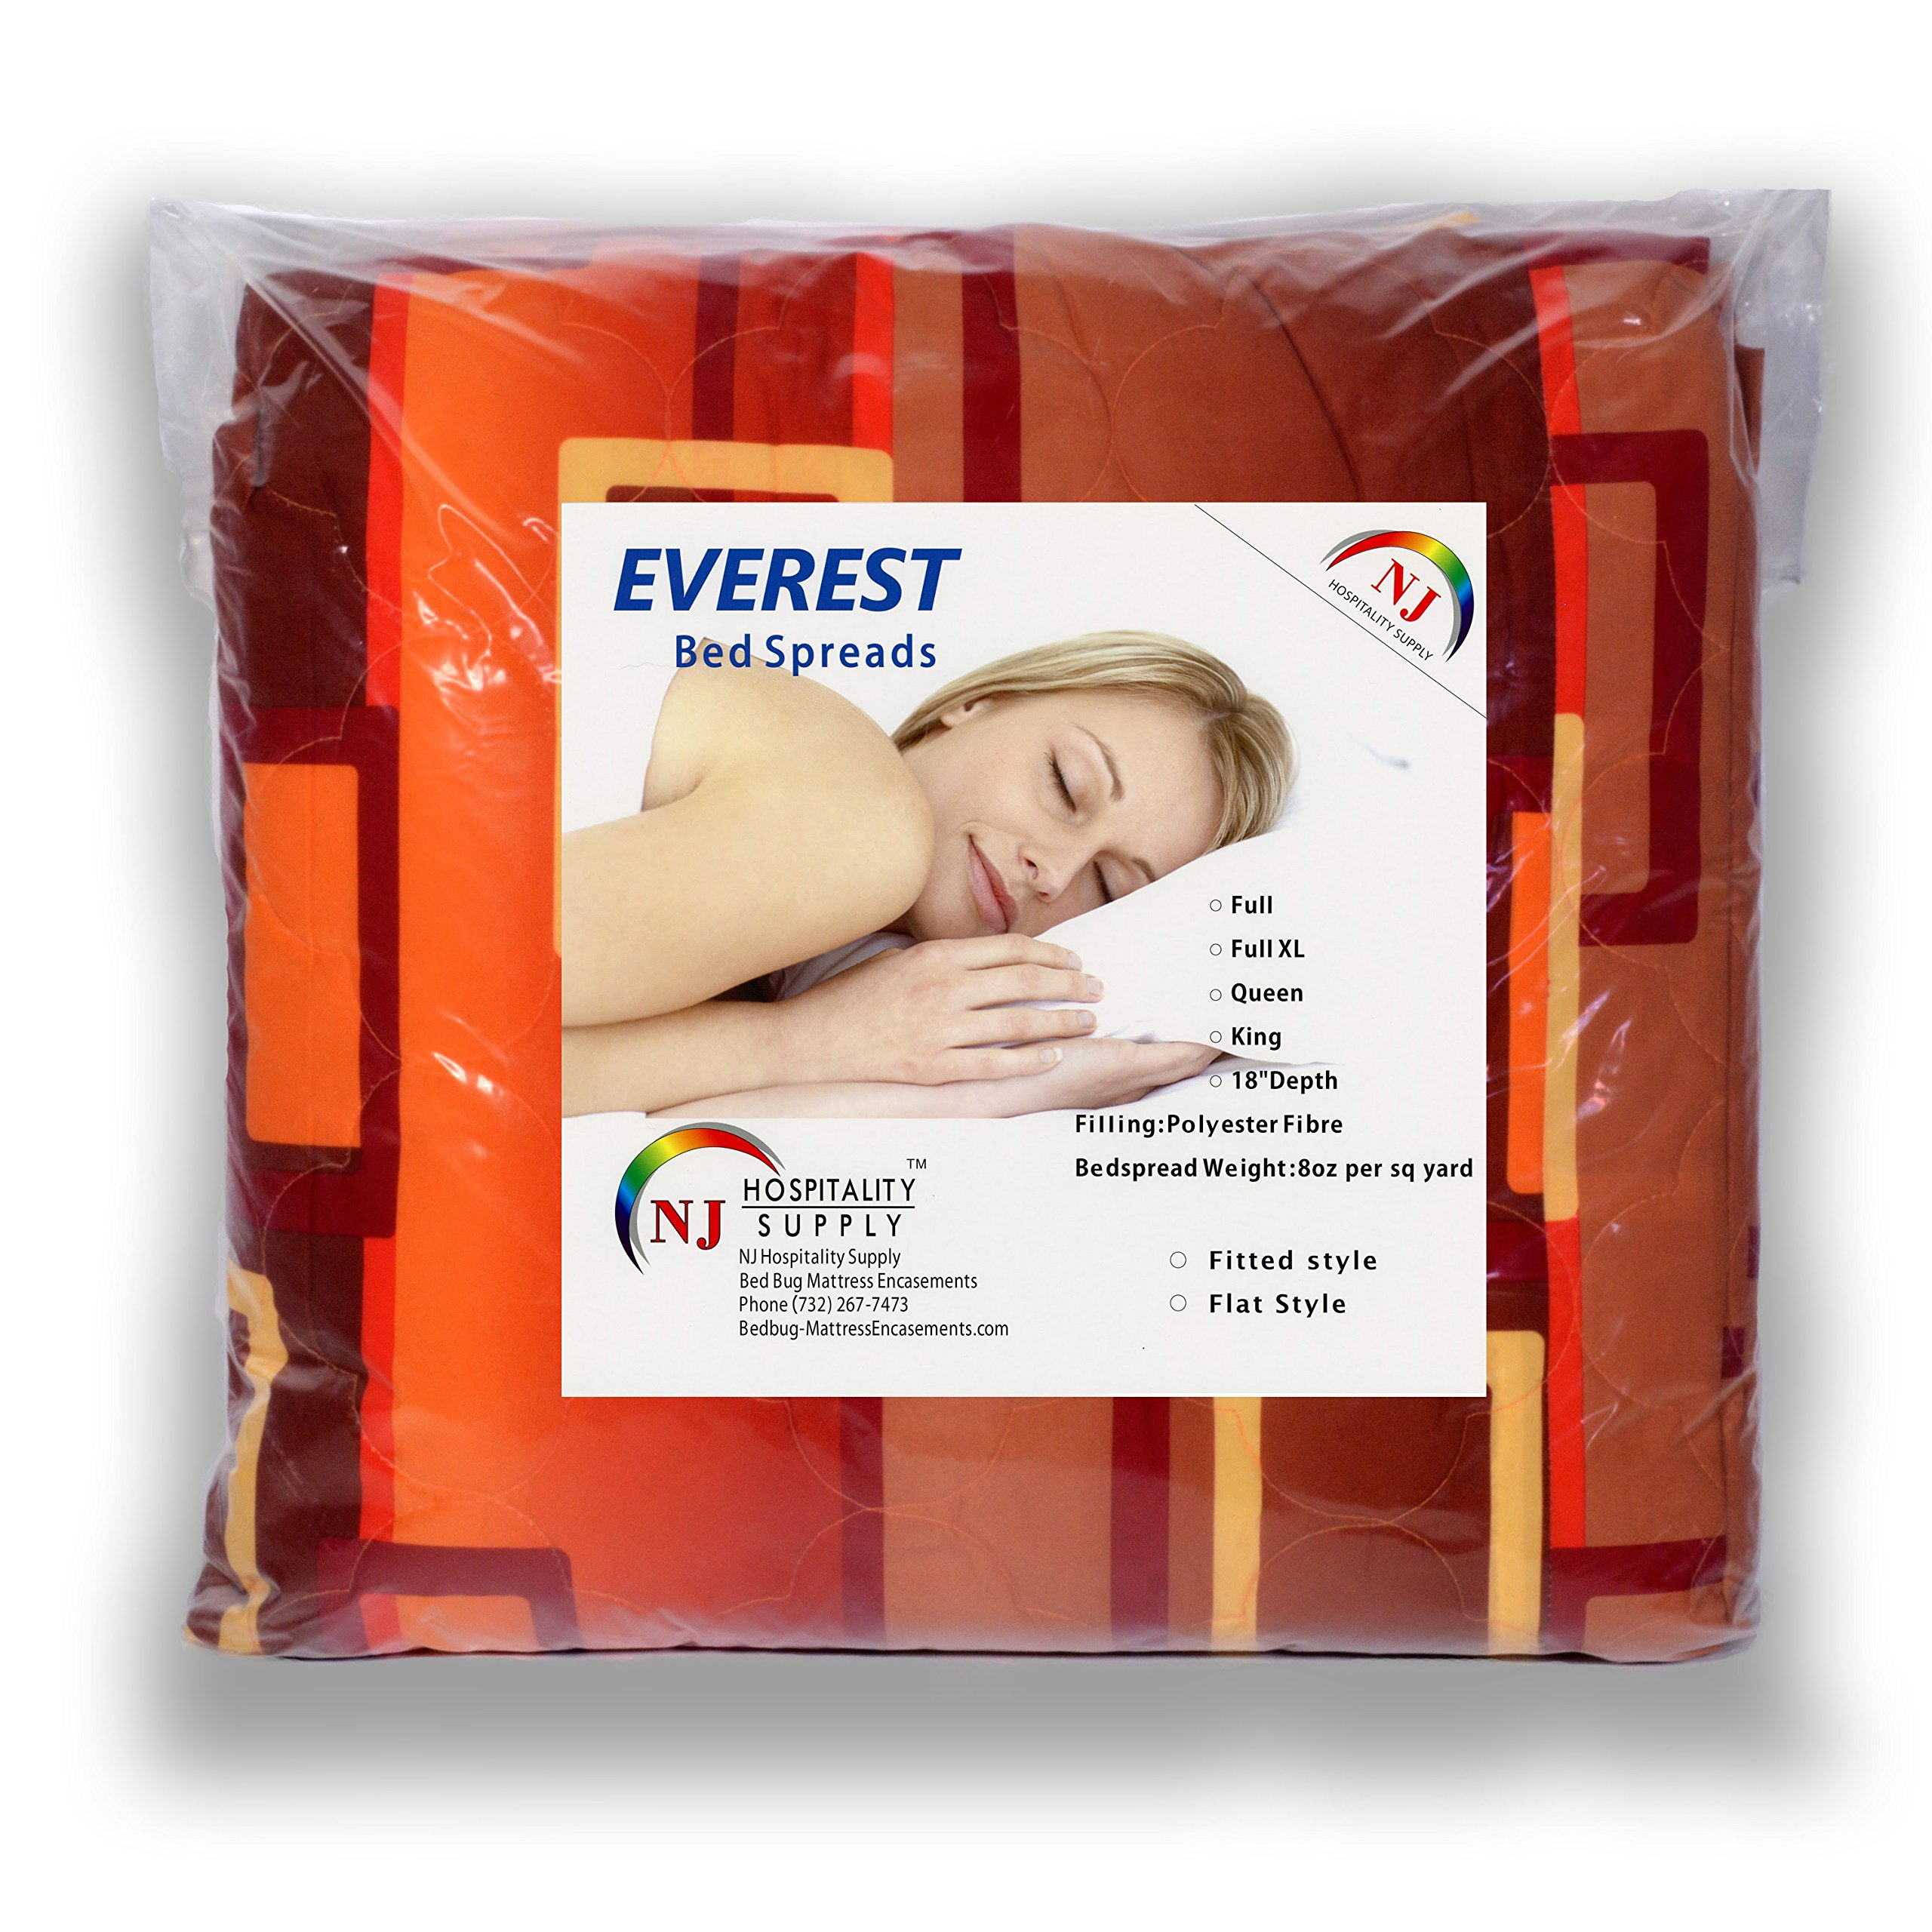 Everest Supply Quilted Bedspread Designed for Hotel/Motel-Resort-Air B&B & Home Over Sized 21'' Fall on Each Side 100% Polyester Fabric-Modern Print-Orange-WaterFall Style(Twin 81x110-4.7 lbs)